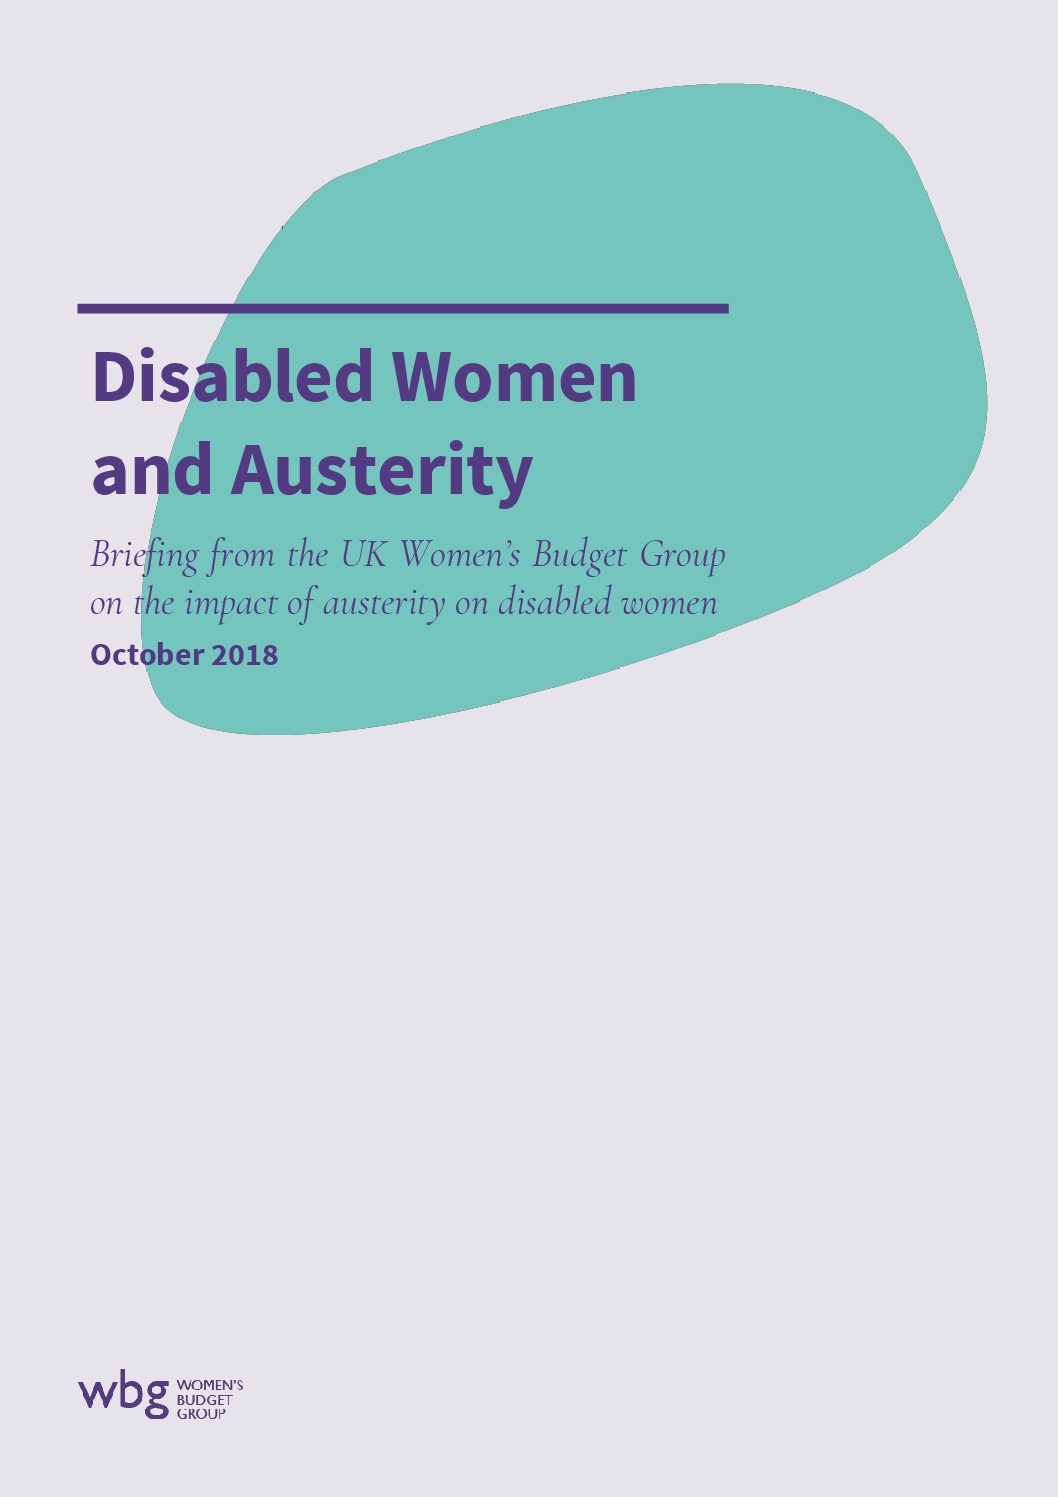 2018 WBG Briefing: Disabled Women and Austerity